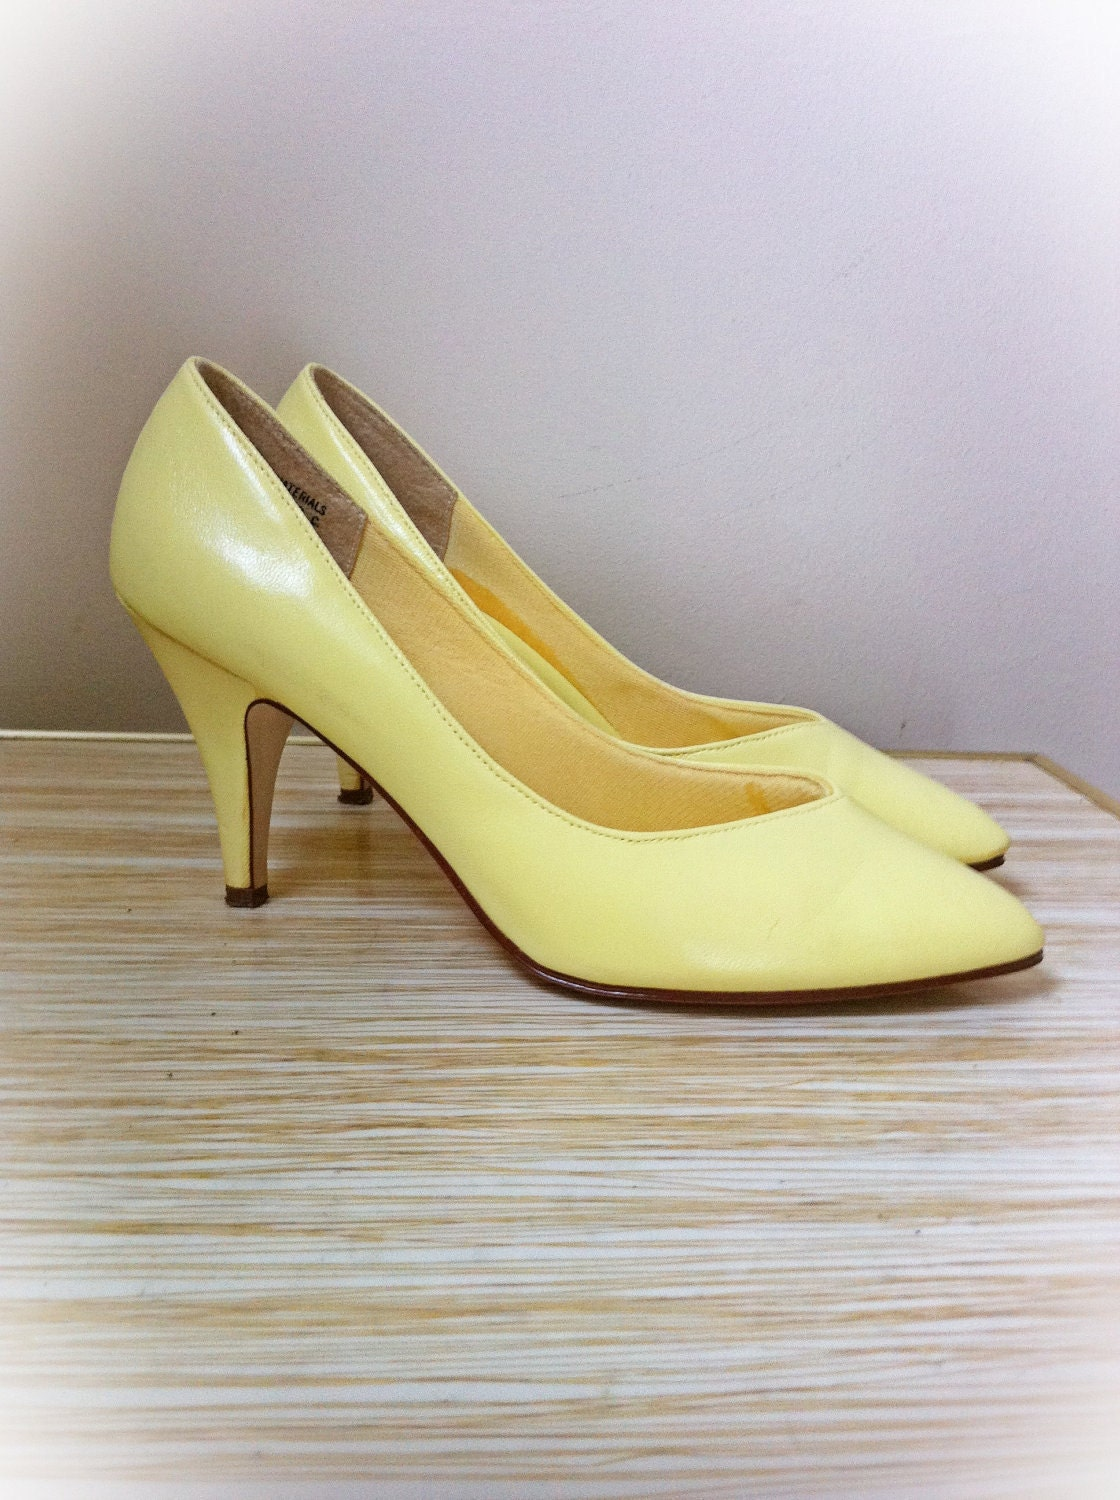 Lemon Yellow Heels - Is Heel